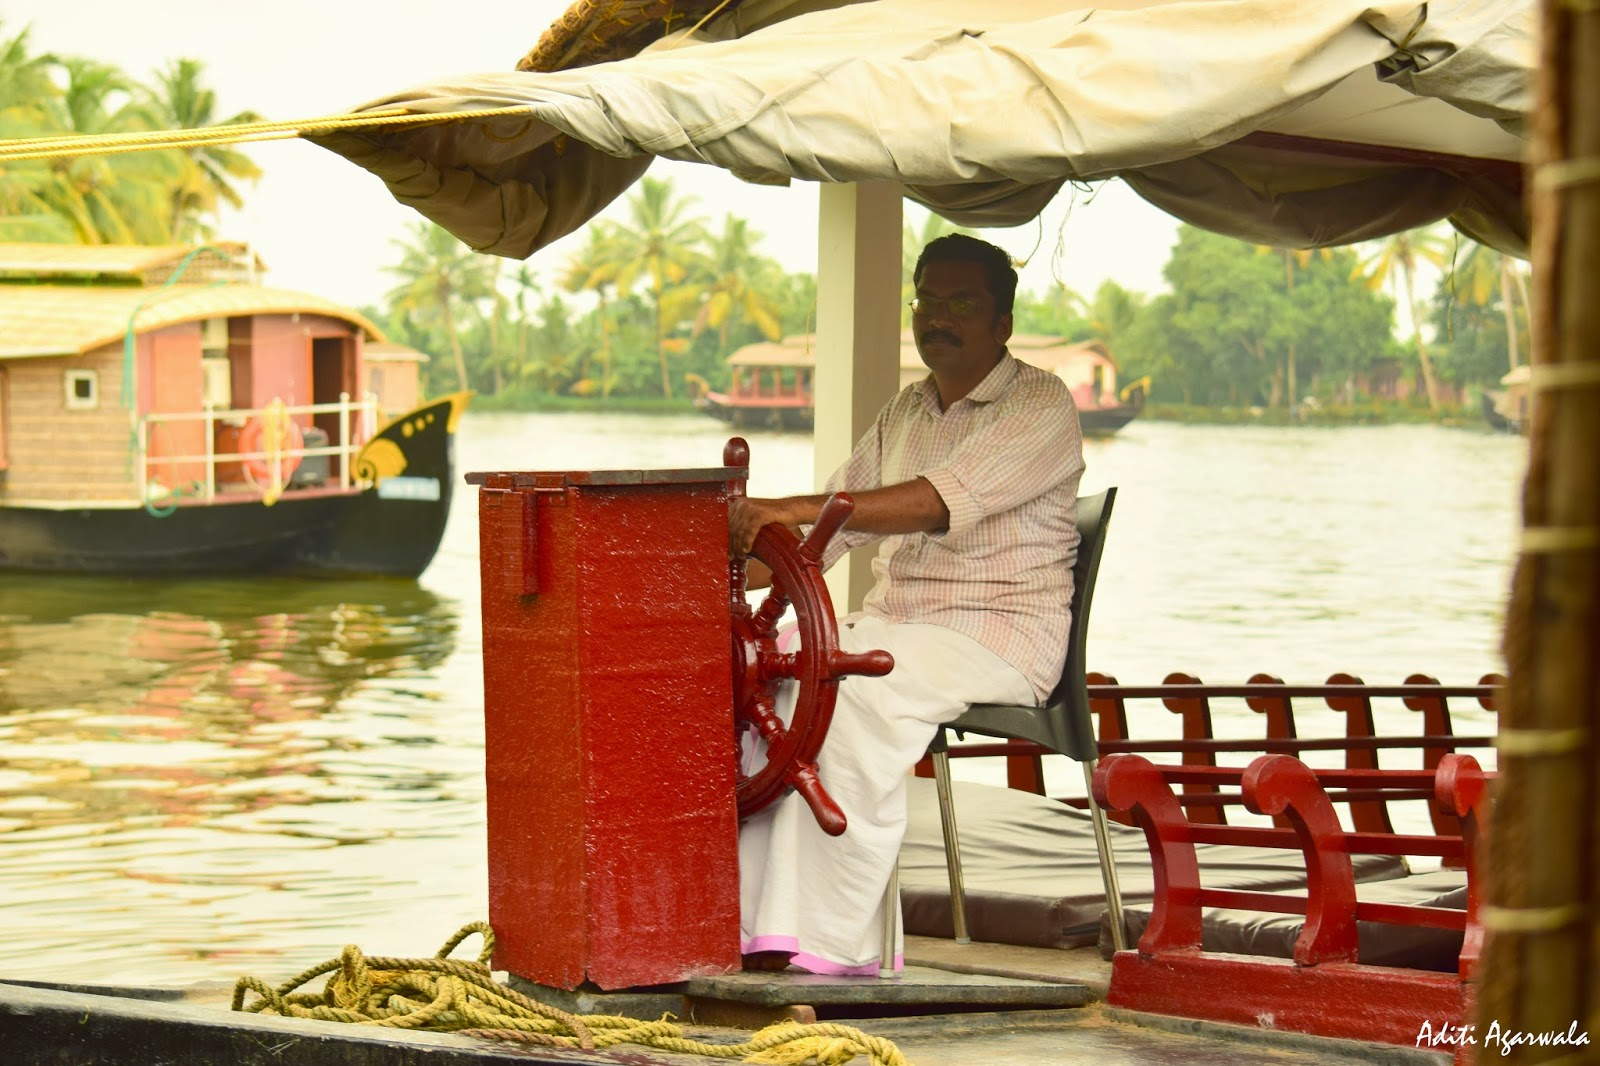 The captain of the houseboat we stayed in Allepey